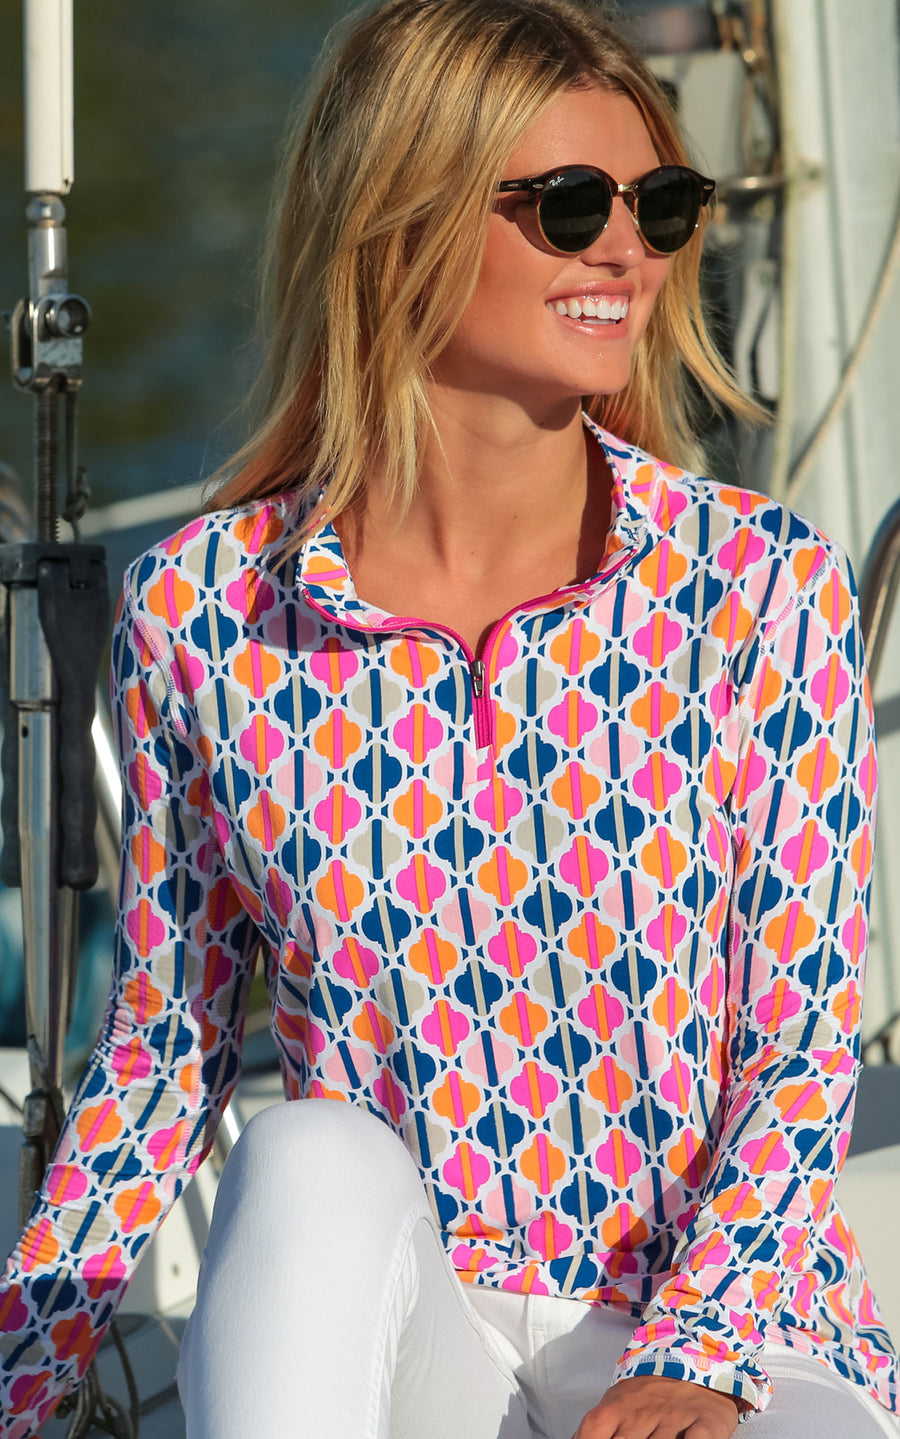 Chasing Waterfalls Pink Quarter Zip Sun Protective Top - FINAL SALE